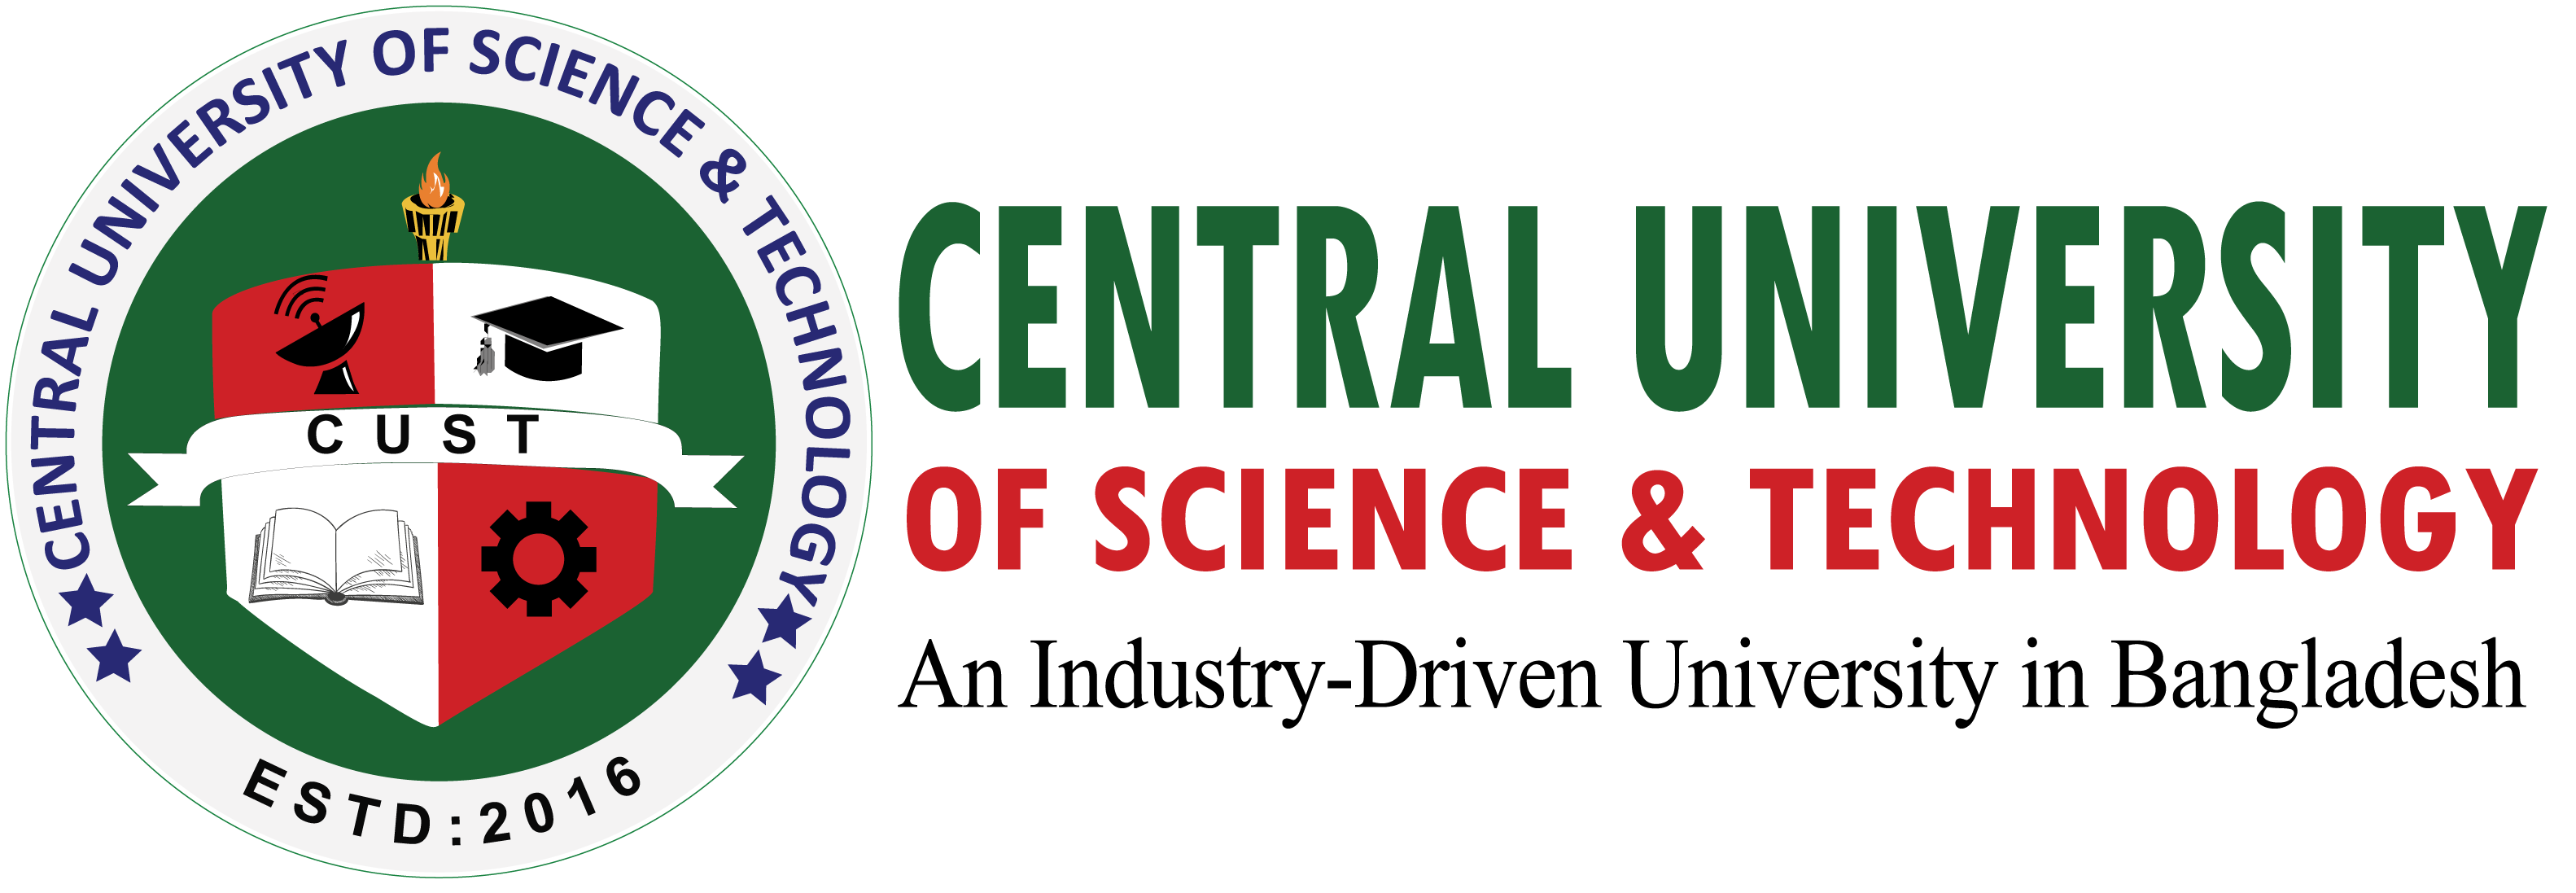 Goal of Education - Central University of Science & Technology